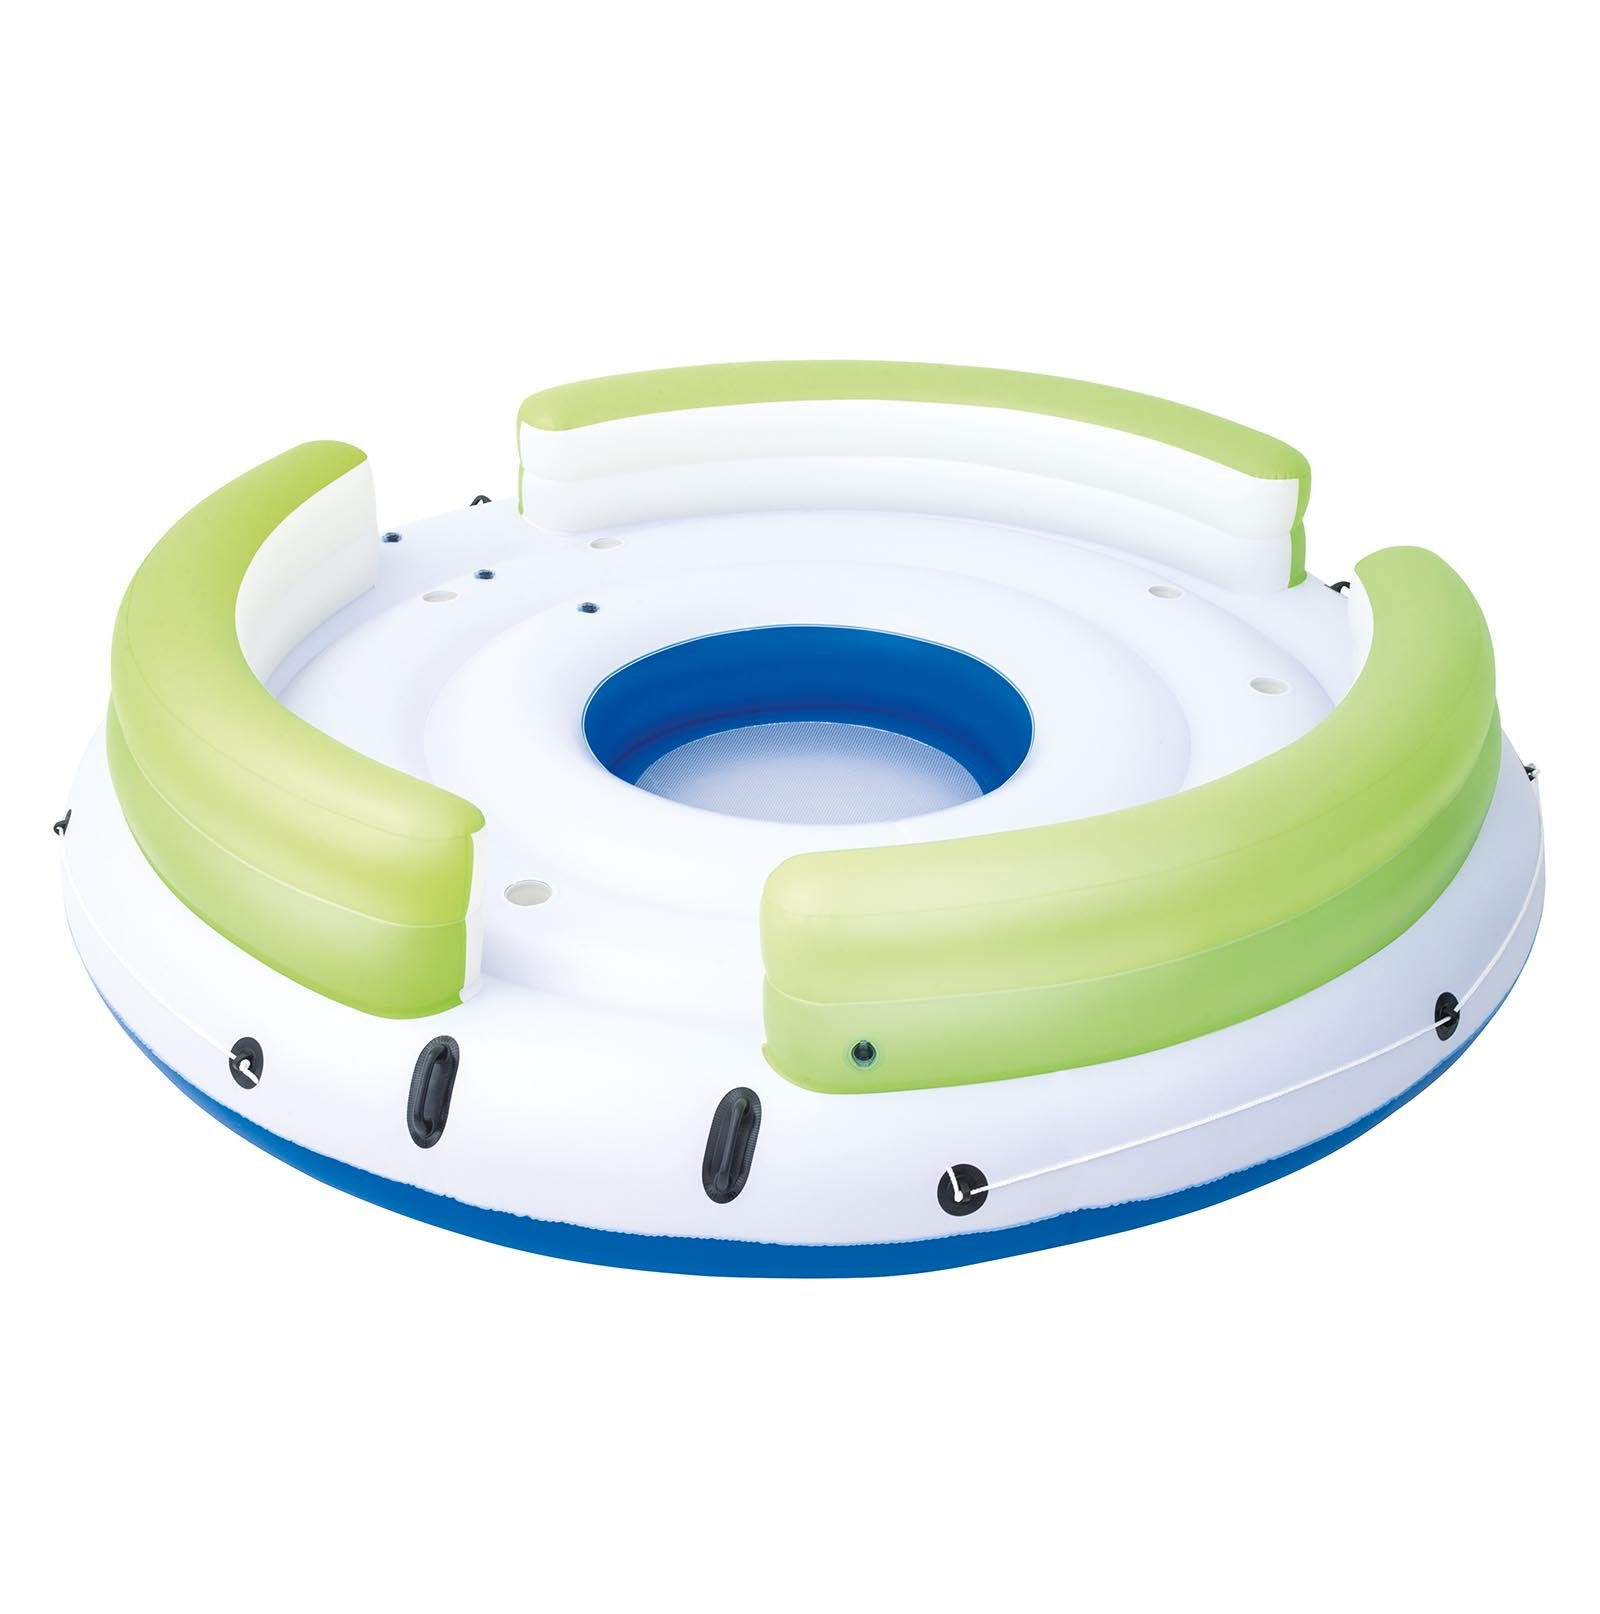 Bestway Lazy Days Inflatable River Island by Bestway (Image #1)